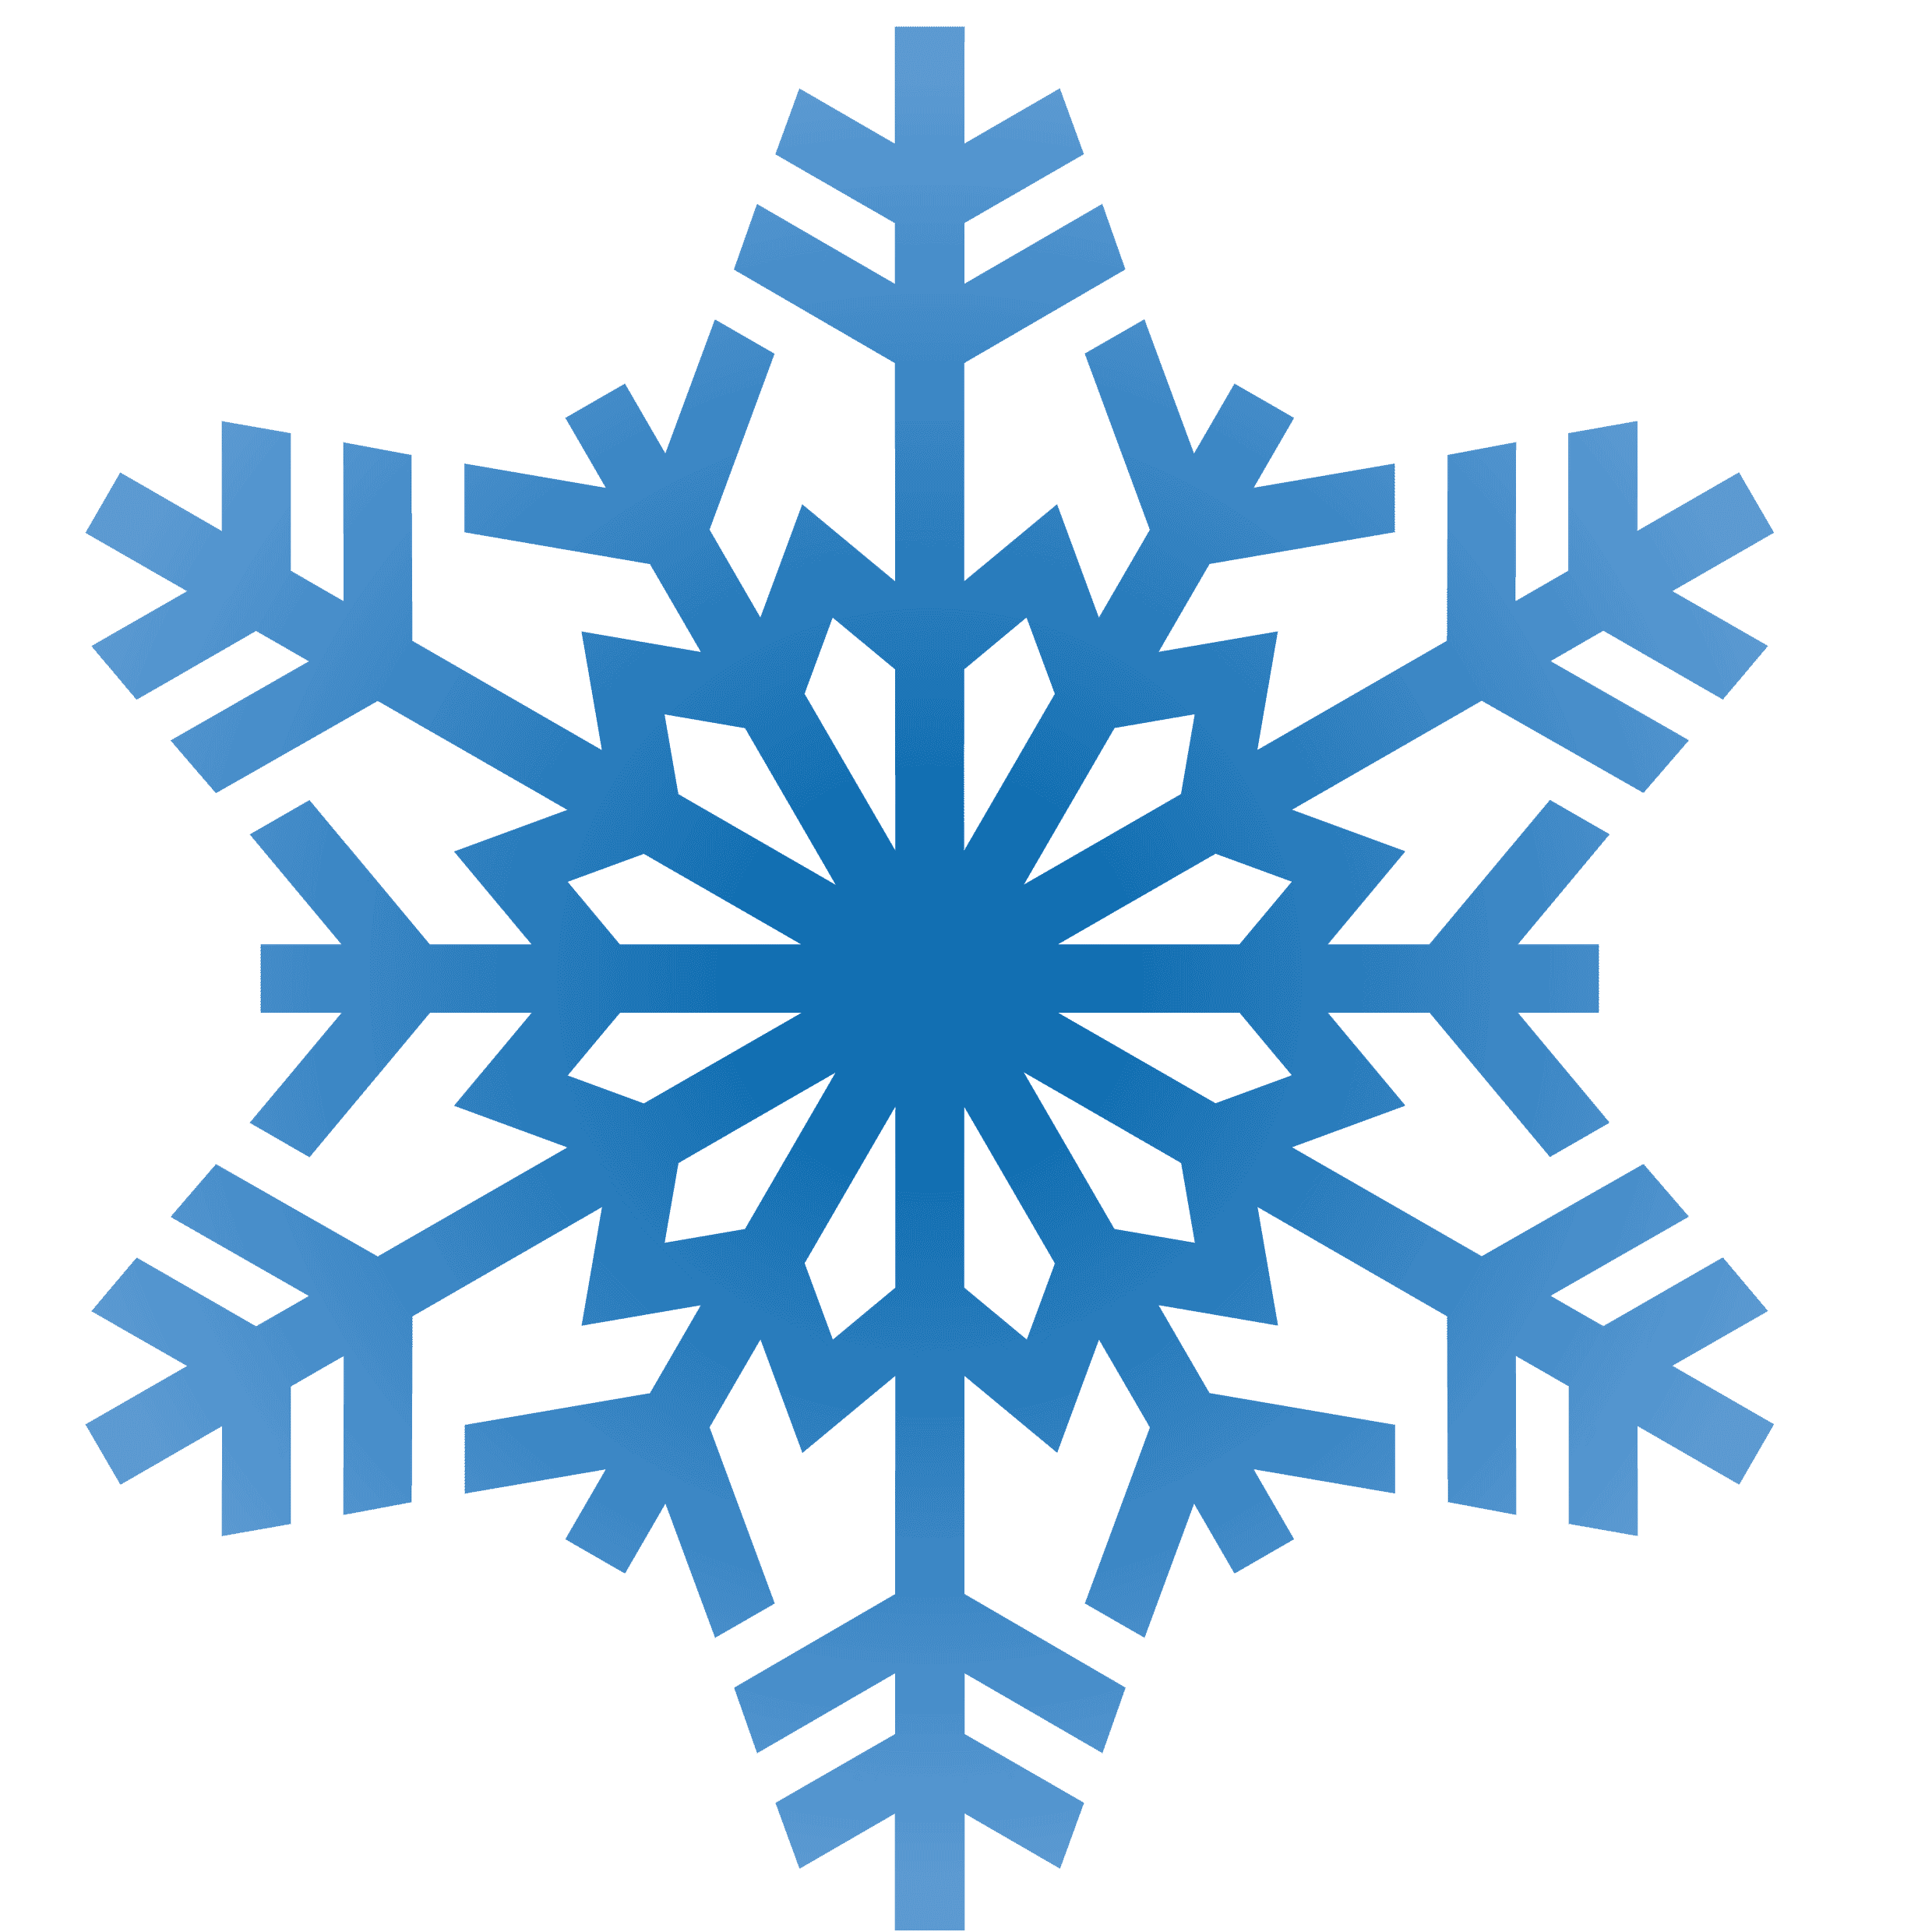 14 Free Snowflake Graphics Images